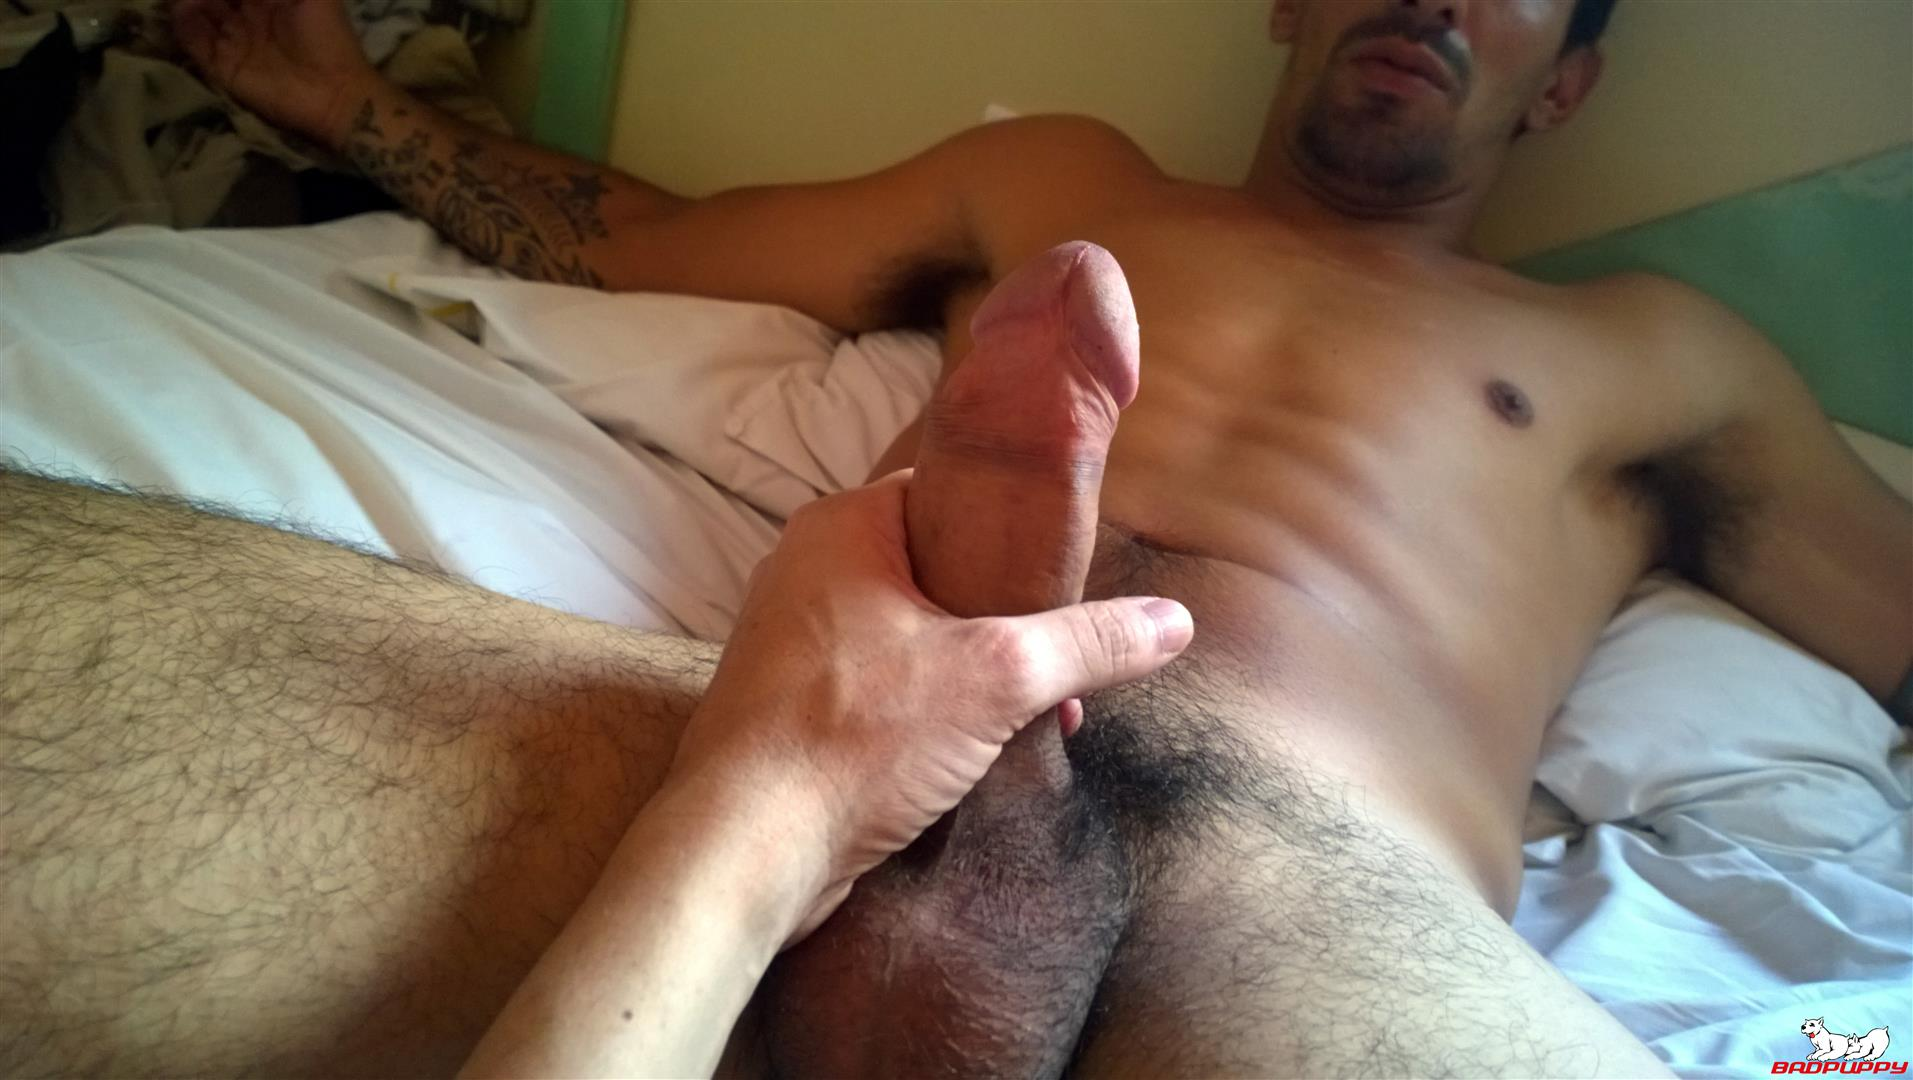 Badpuppy-Fabian-Flores-Argentinian-with-a-Big-Uncut-Cock-09 Argentinian Hunk With A Big Uncut Cock Auditions For Gay Porn